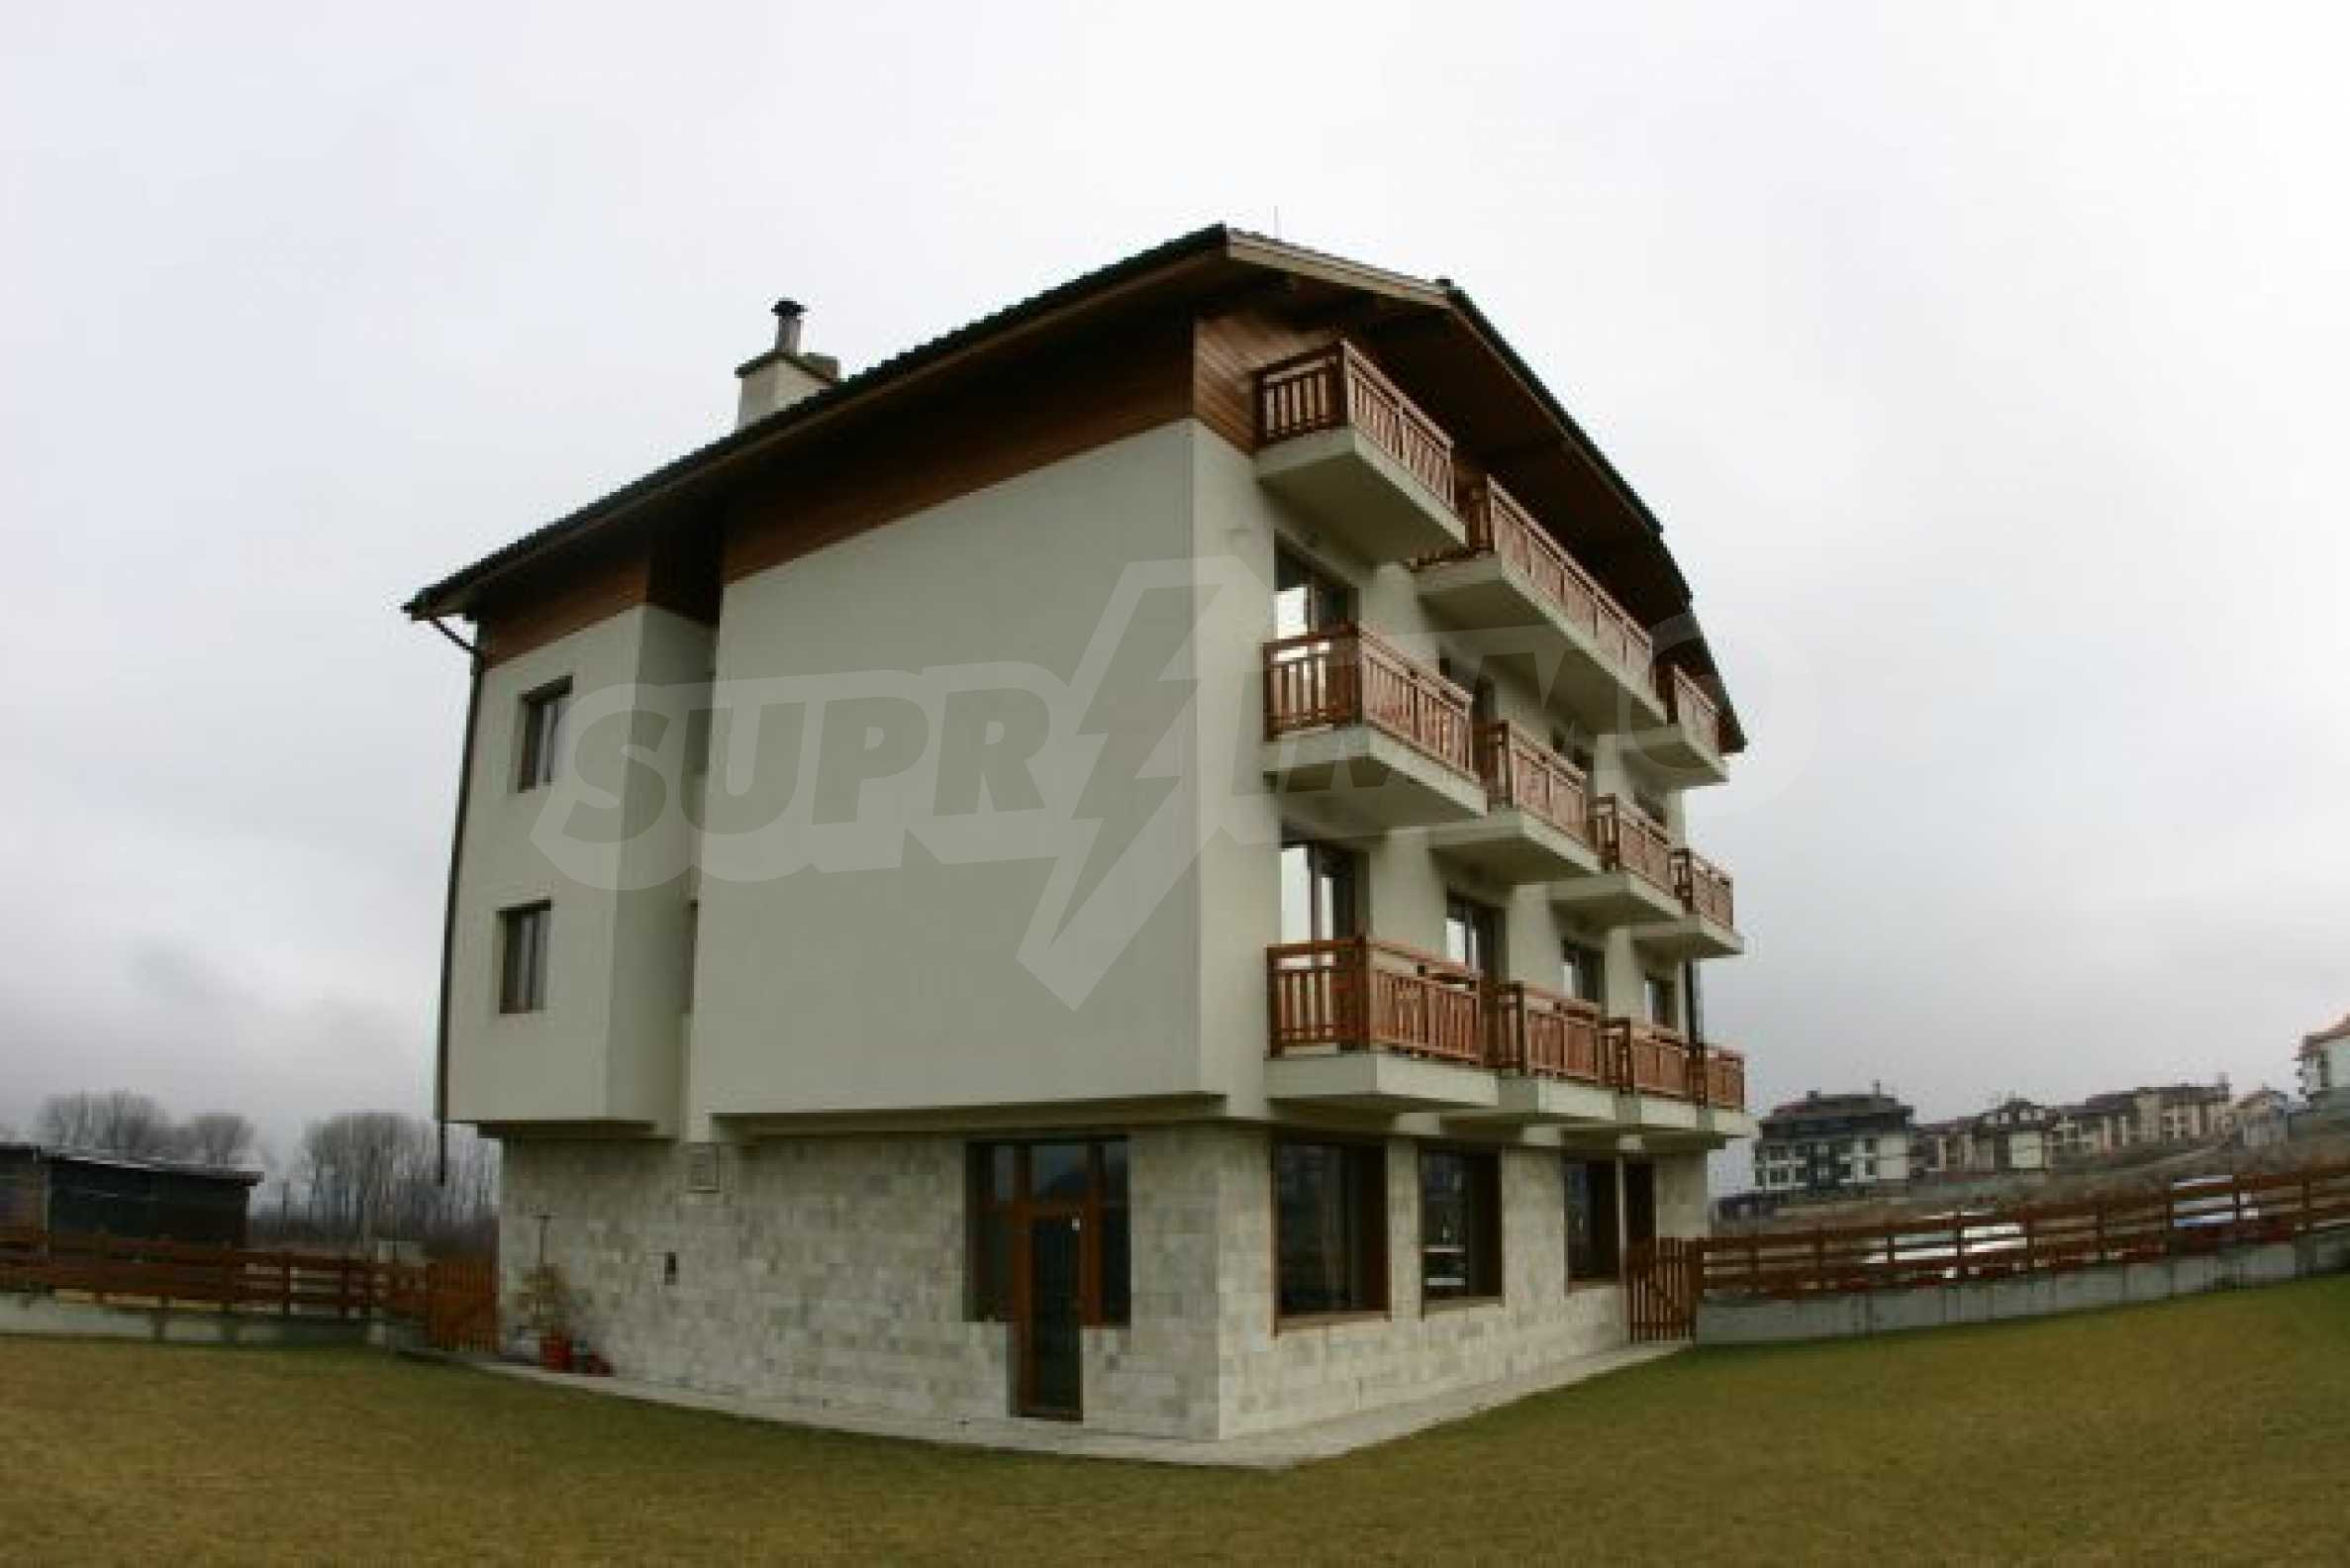 Fully furnished and equipped hotel in an excellent condition in Bansko